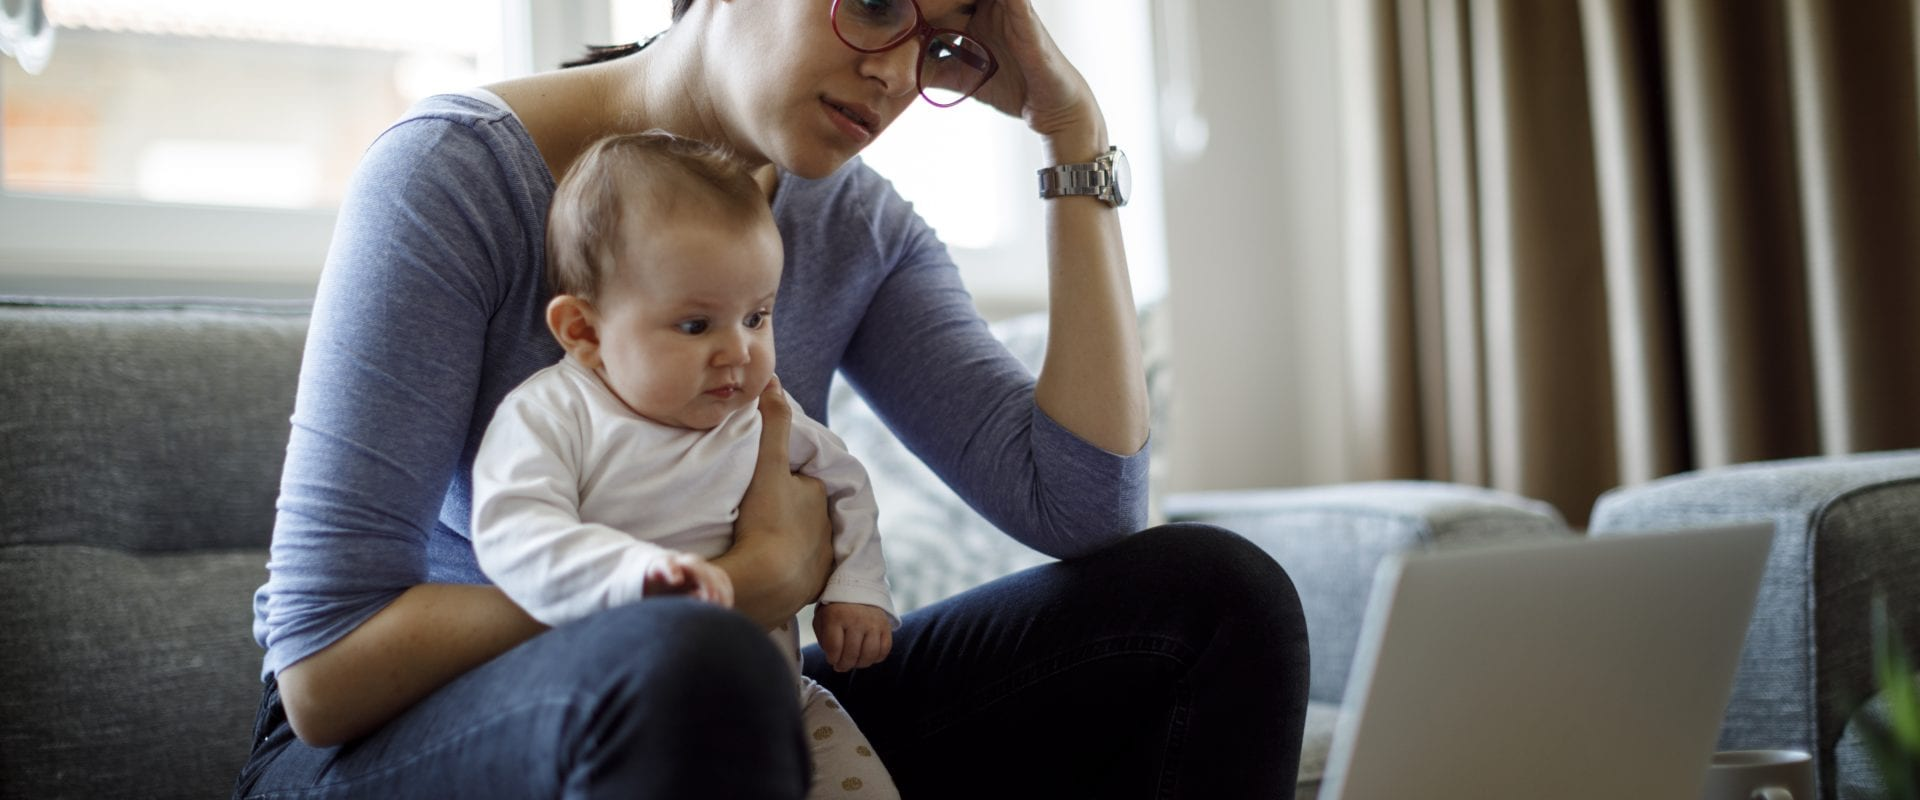 Postpartum depression is more than the baby blues.